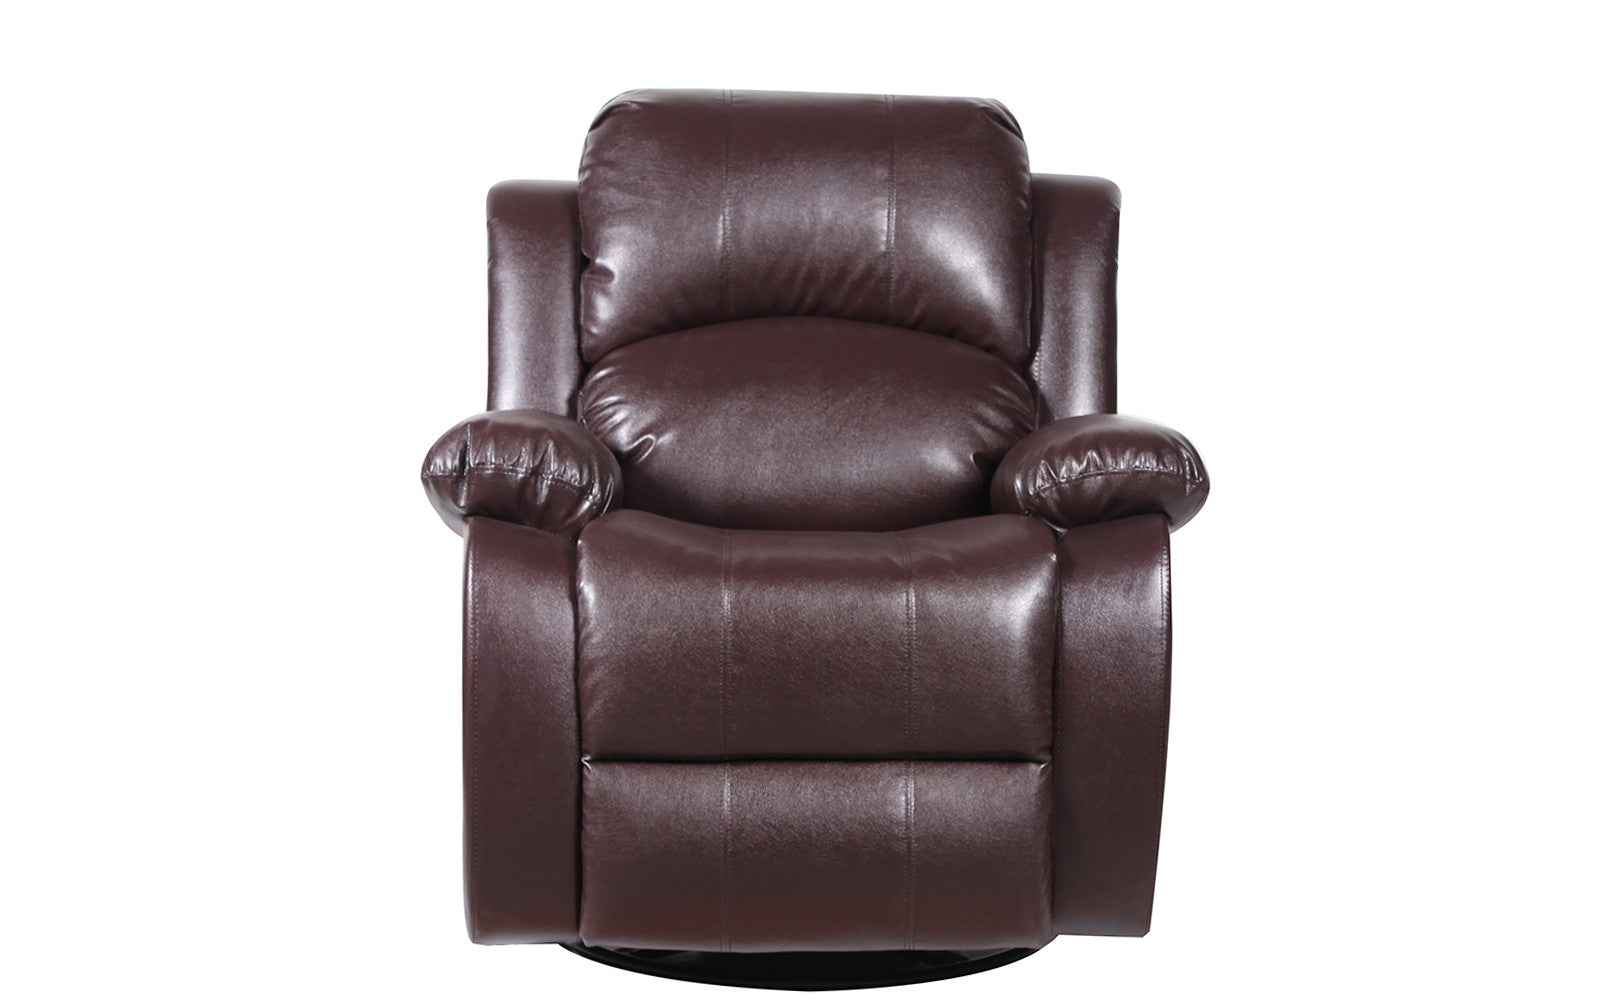 Swivel Rocker Recliner John Bonded Leather Recliner Rocker Swivel - Reclining swivel chair